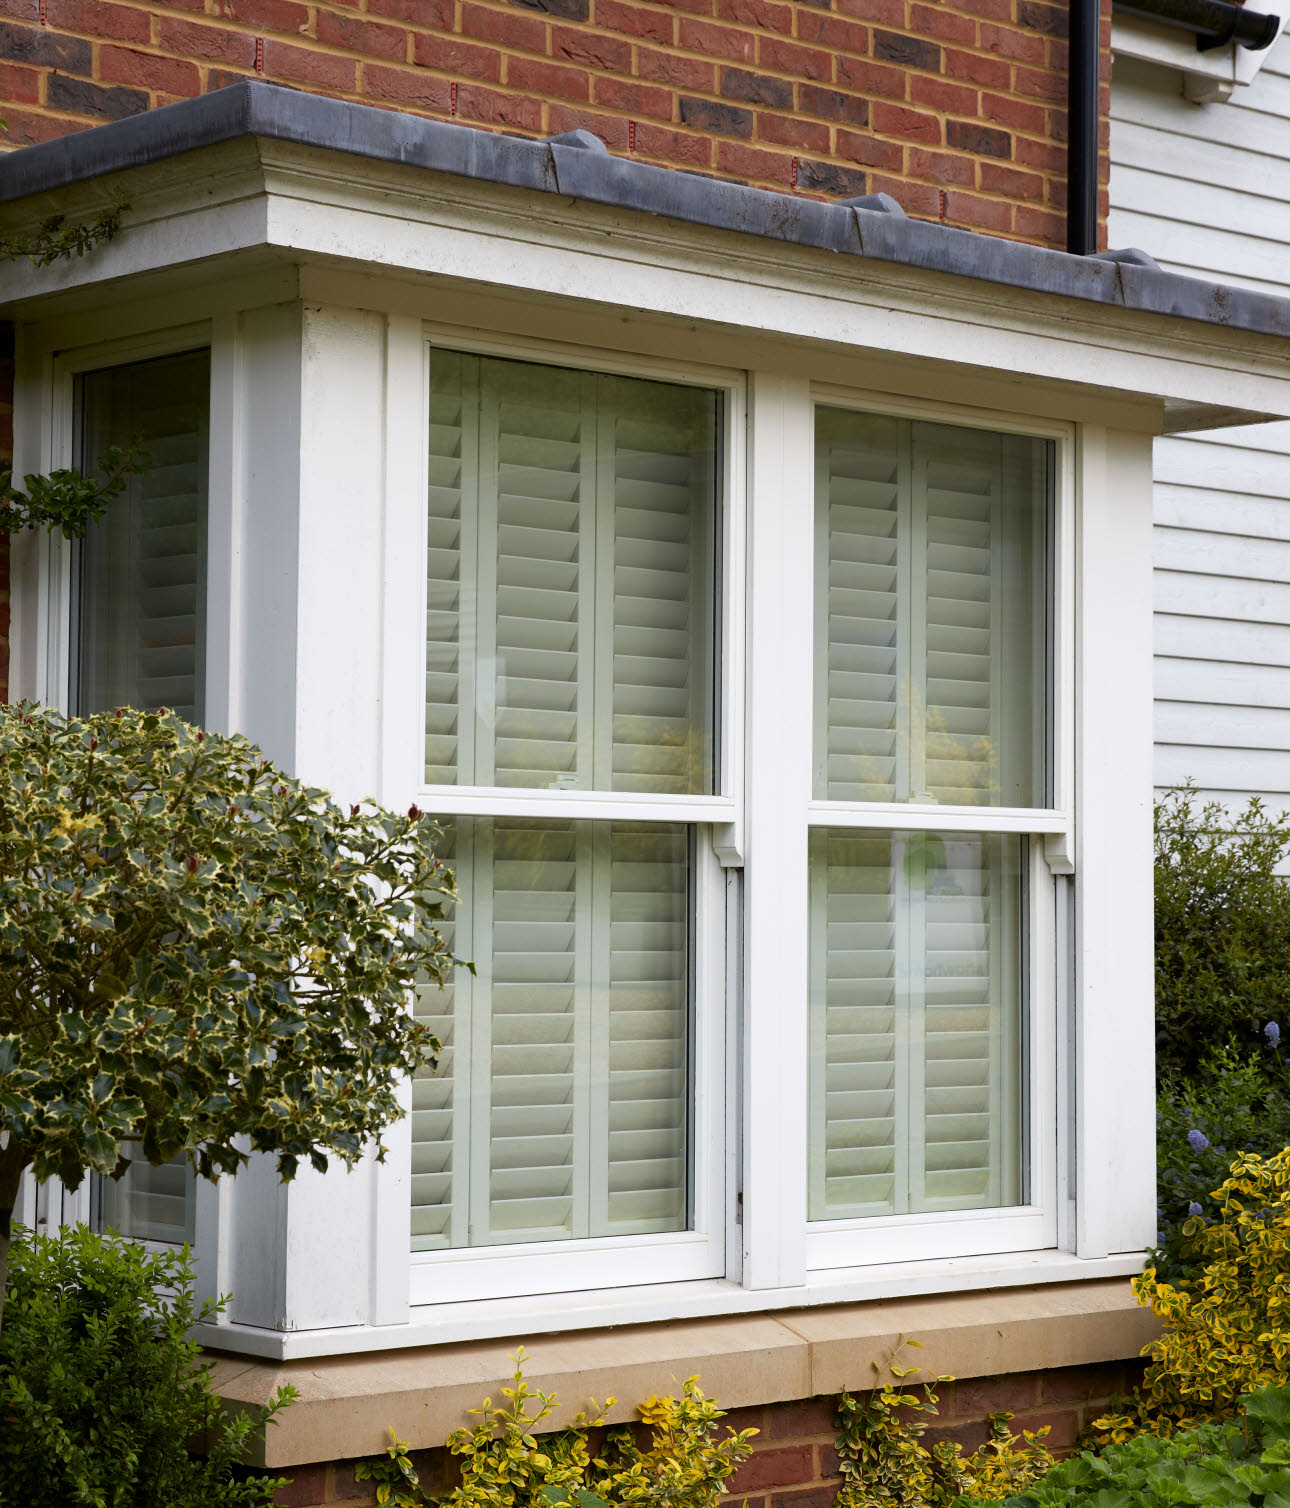 JELD-WEN Square Bay with Sliding Sash Timber Window